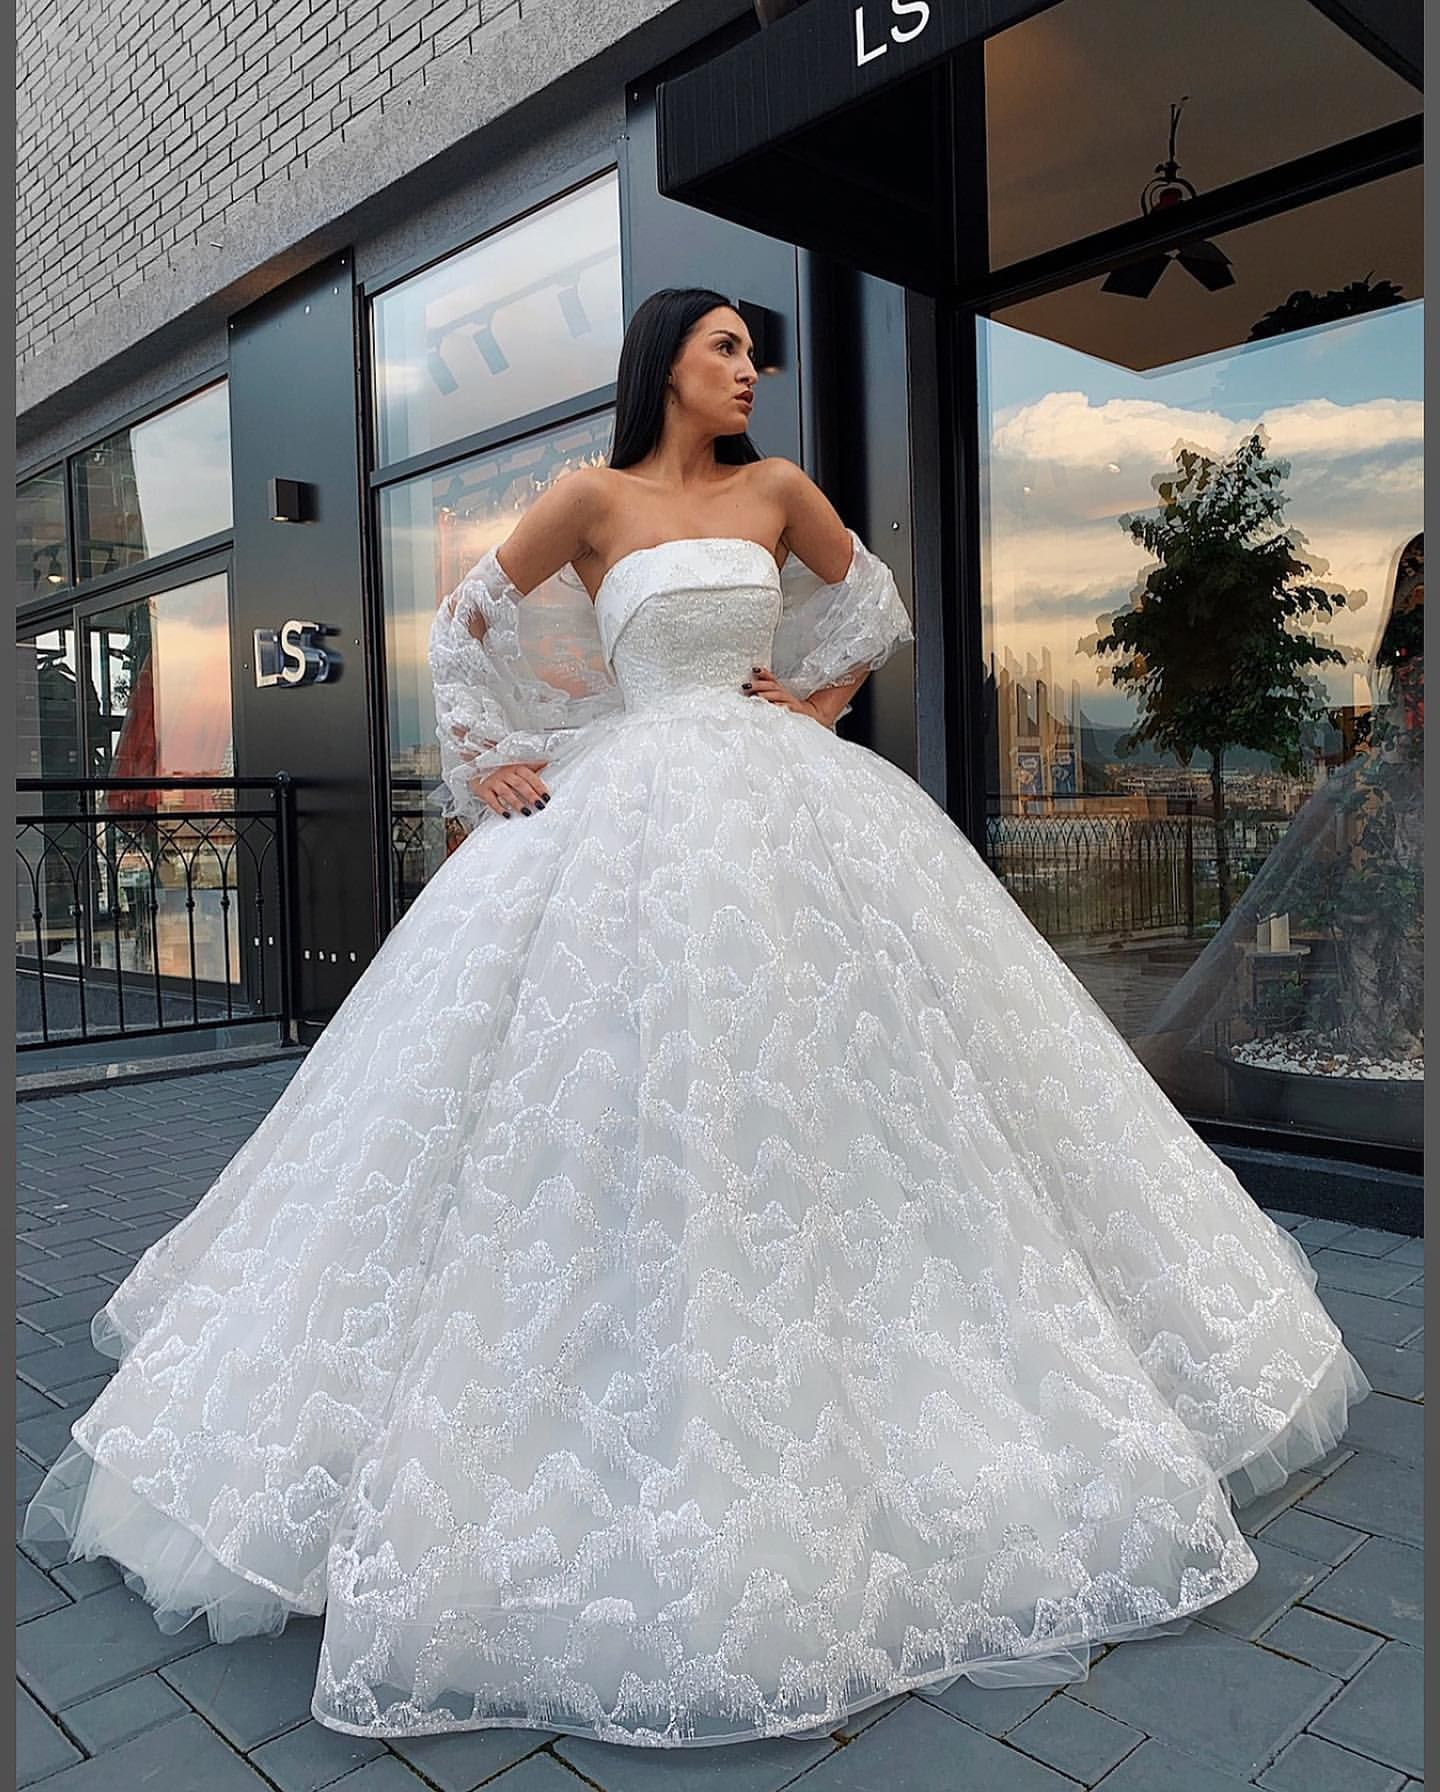 Custom Made Dresses Wedding And Bridesmaid Dresses Prom Gowns Online Puffy Wedding Dresses Ball Gowns Wedding White Ball Gowns